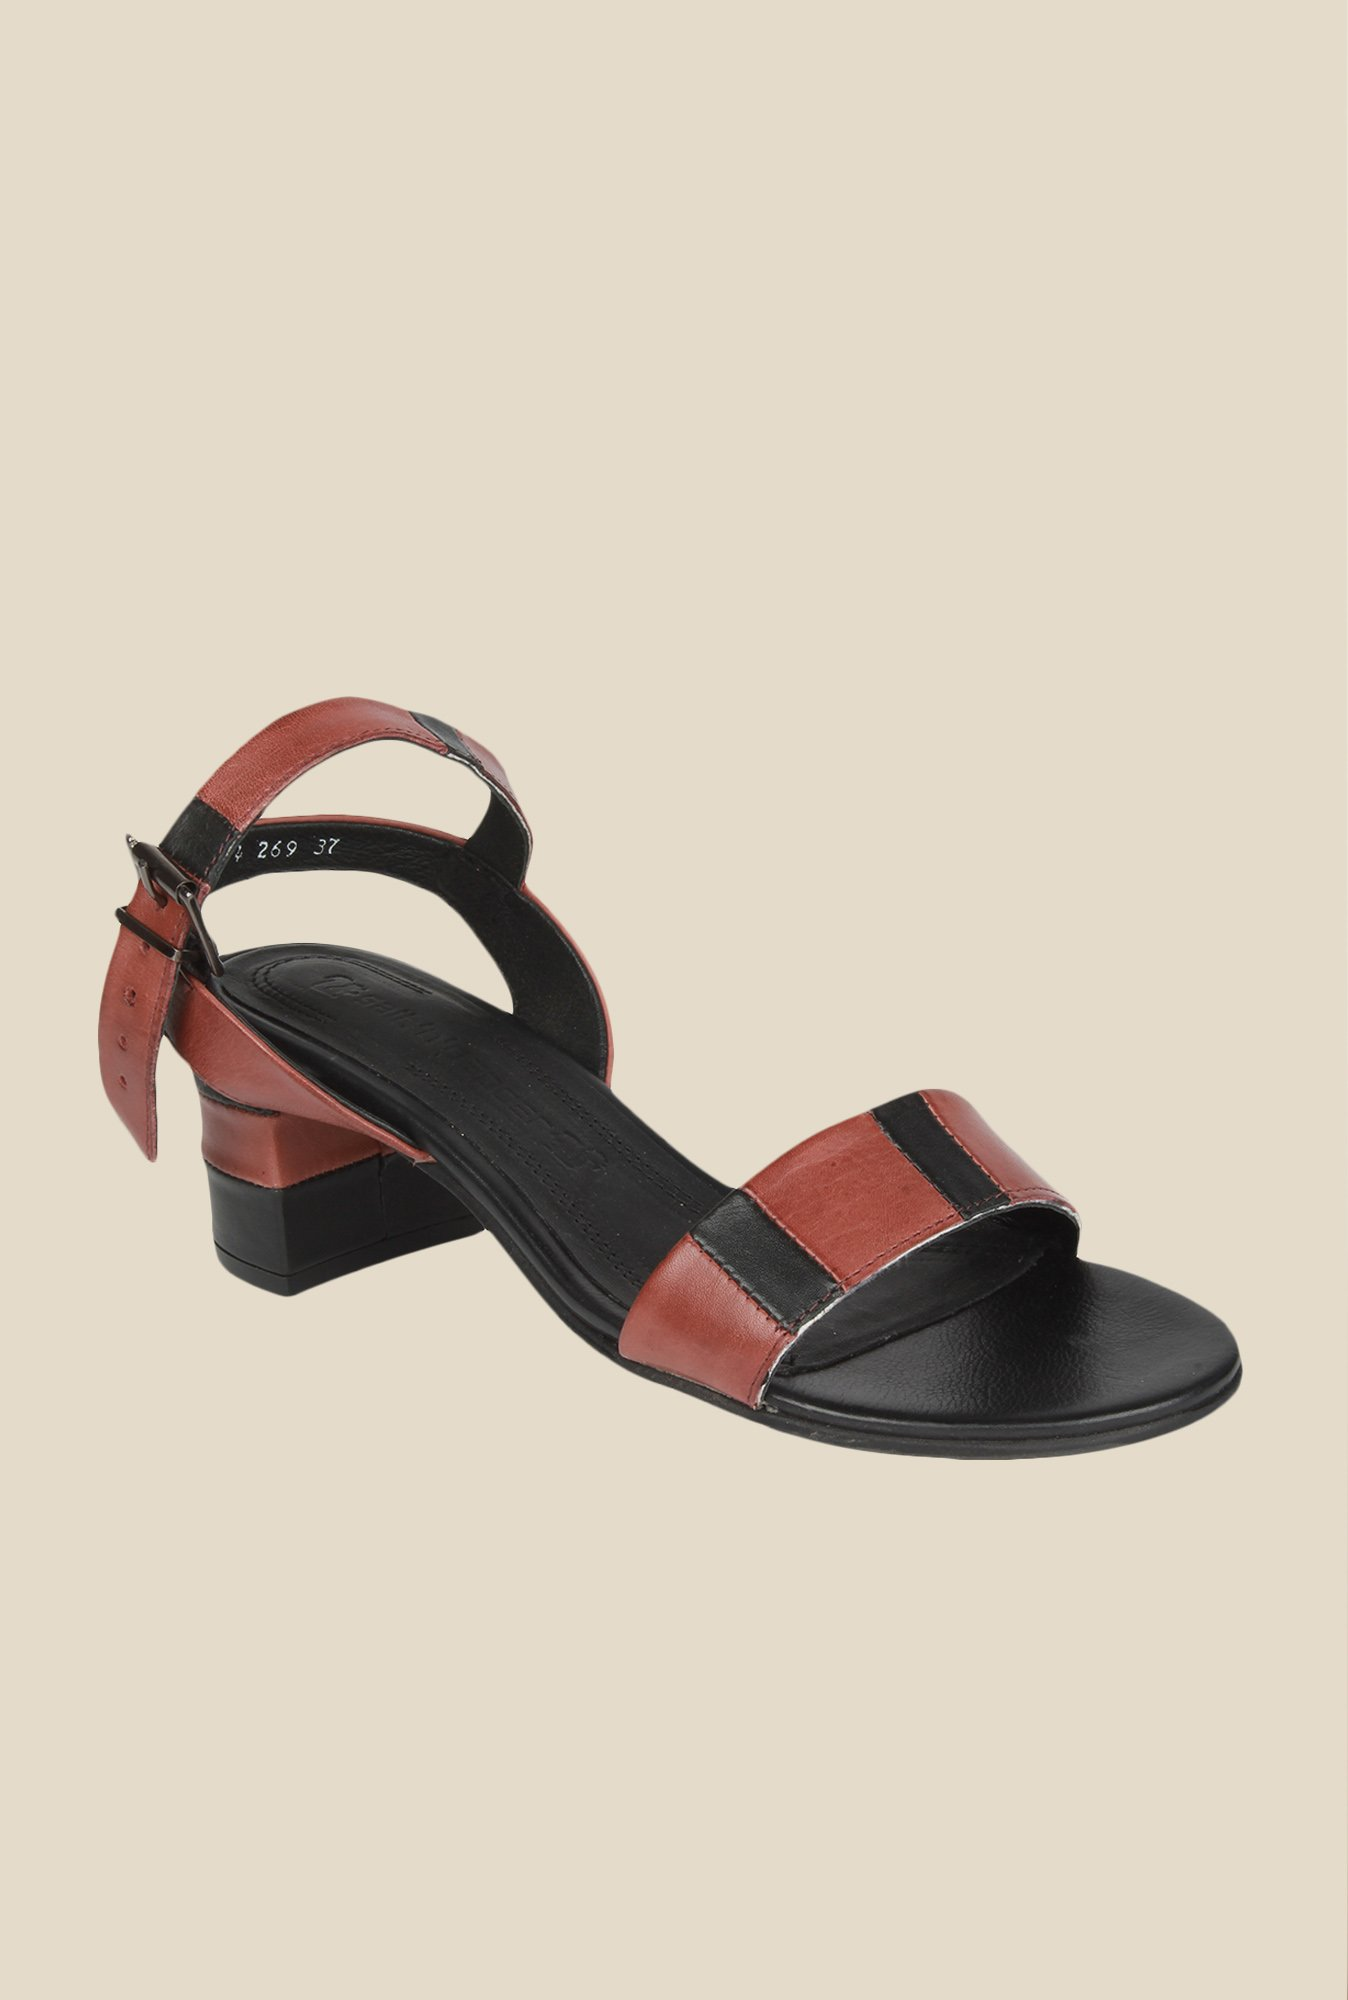 Salt 'n' Pepper Wendy Wine & Black Ankle Strap Sandals